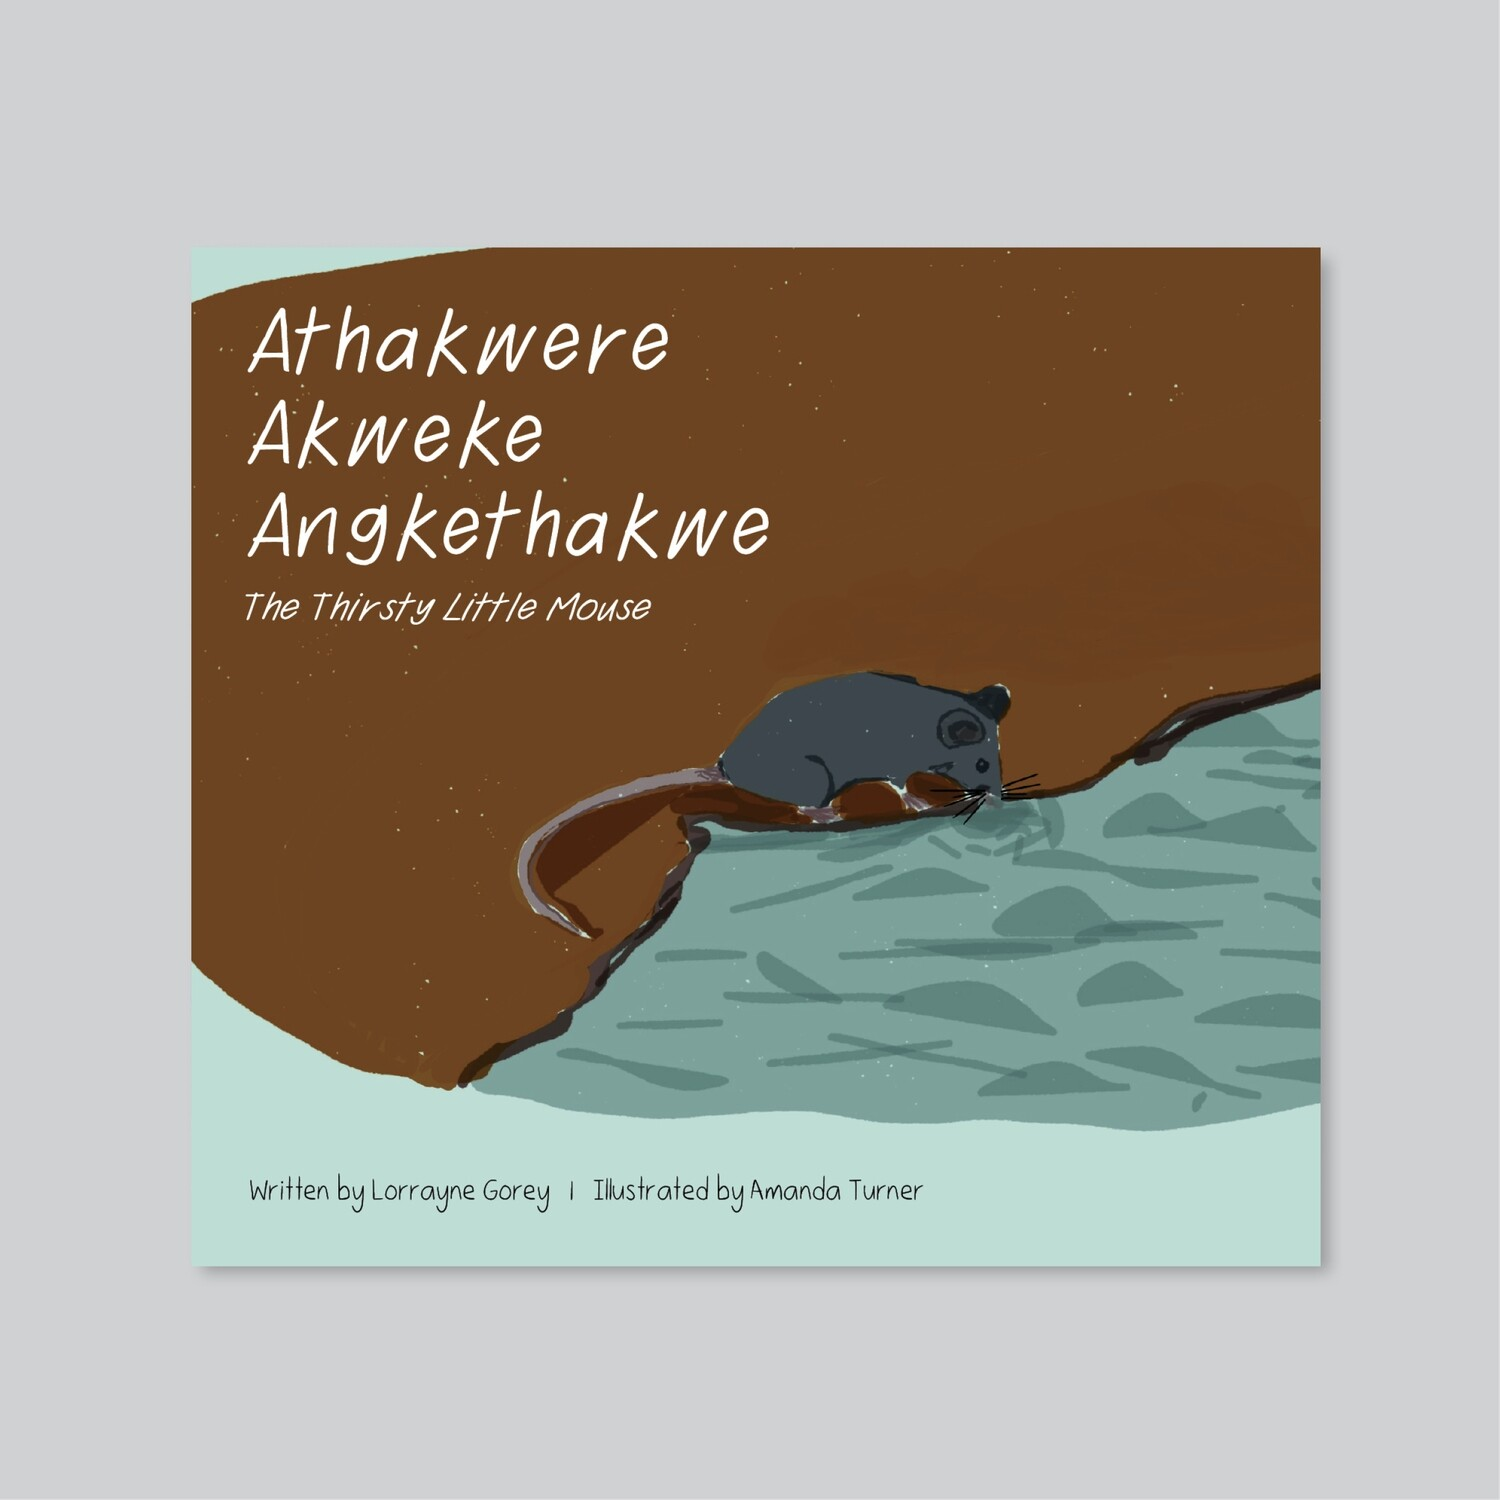 Athakwere Akweke Angkethakwe (The Thirsty Little Mouse)